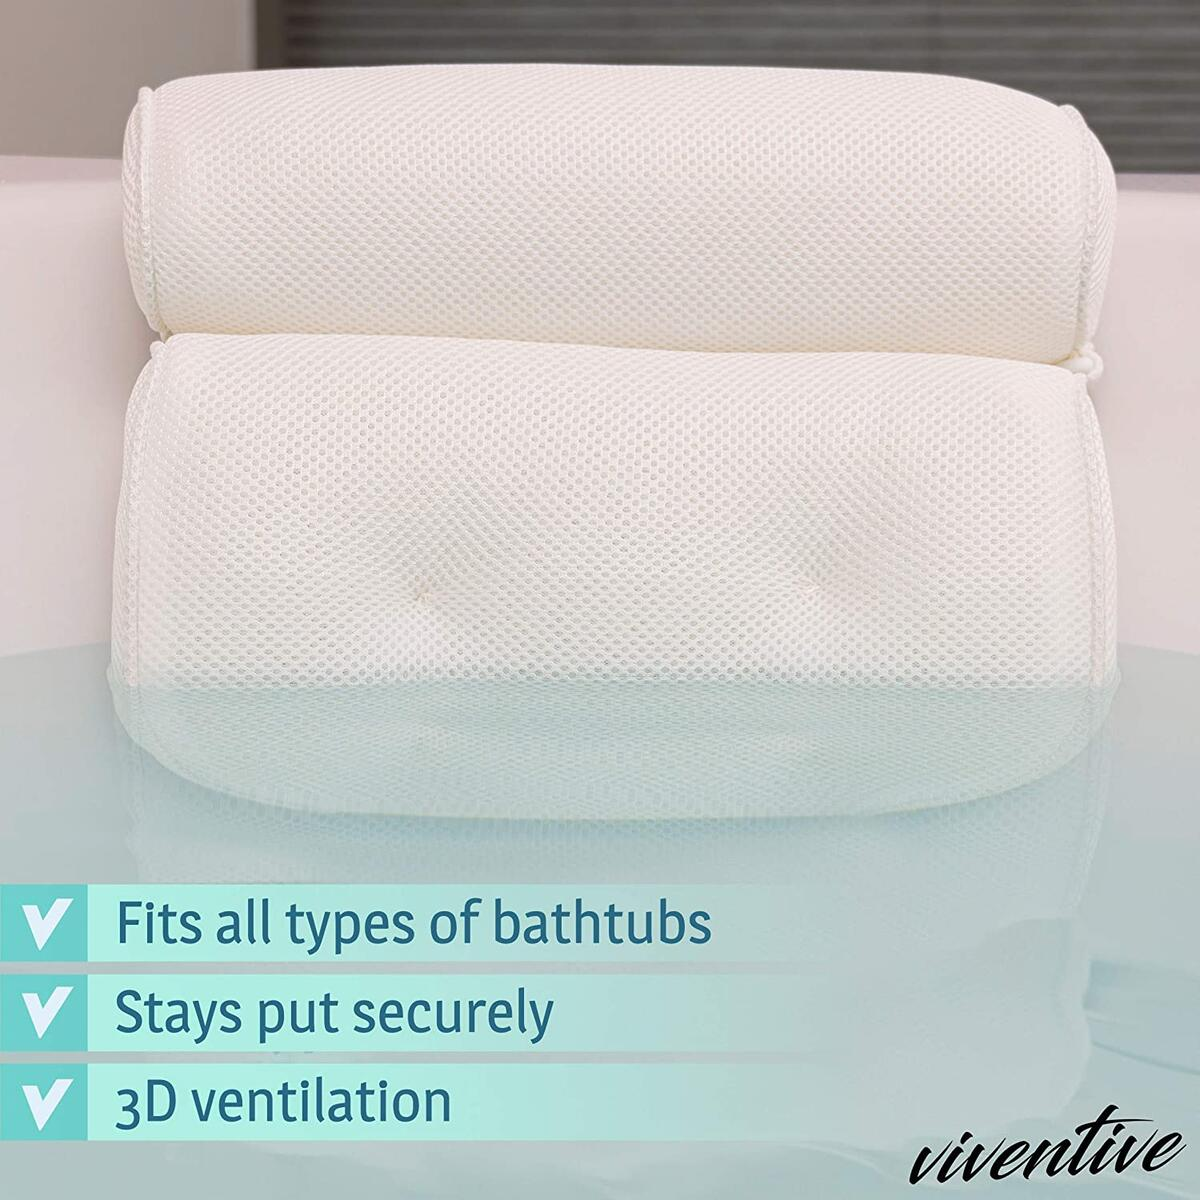 Luxurious Bath Pillow Non-Slip and Extra Thick